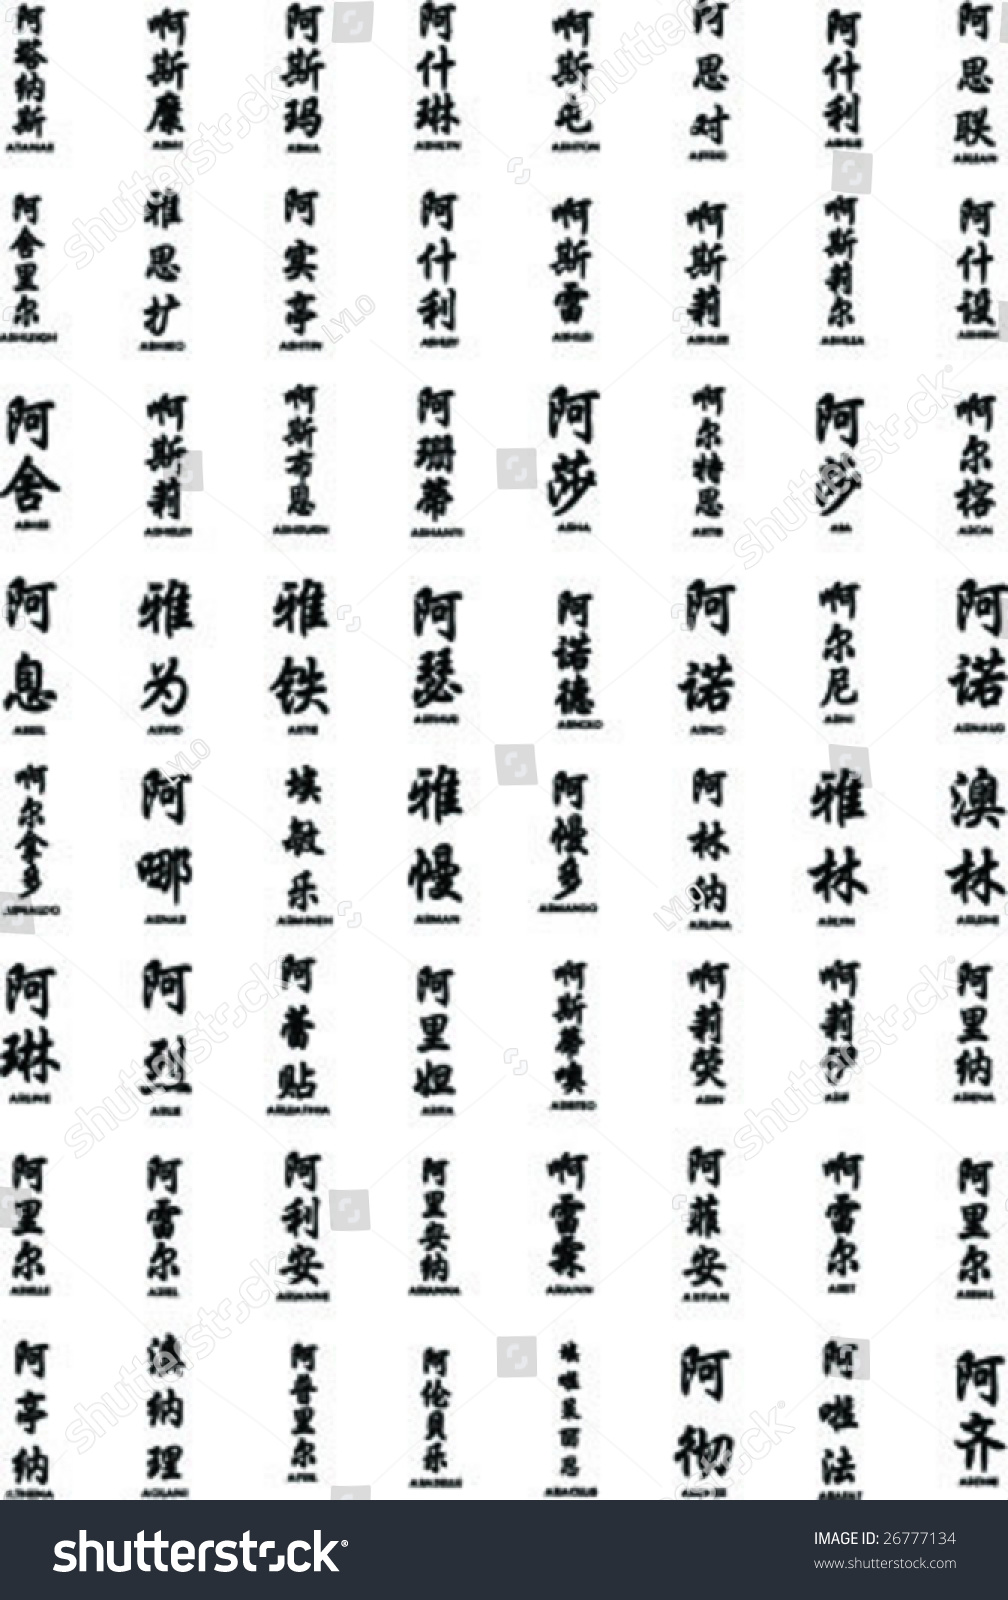 Names chinese letter stock vector 26777134 shutterstock names in chinese with the letter a biocorpaavc Choice Image